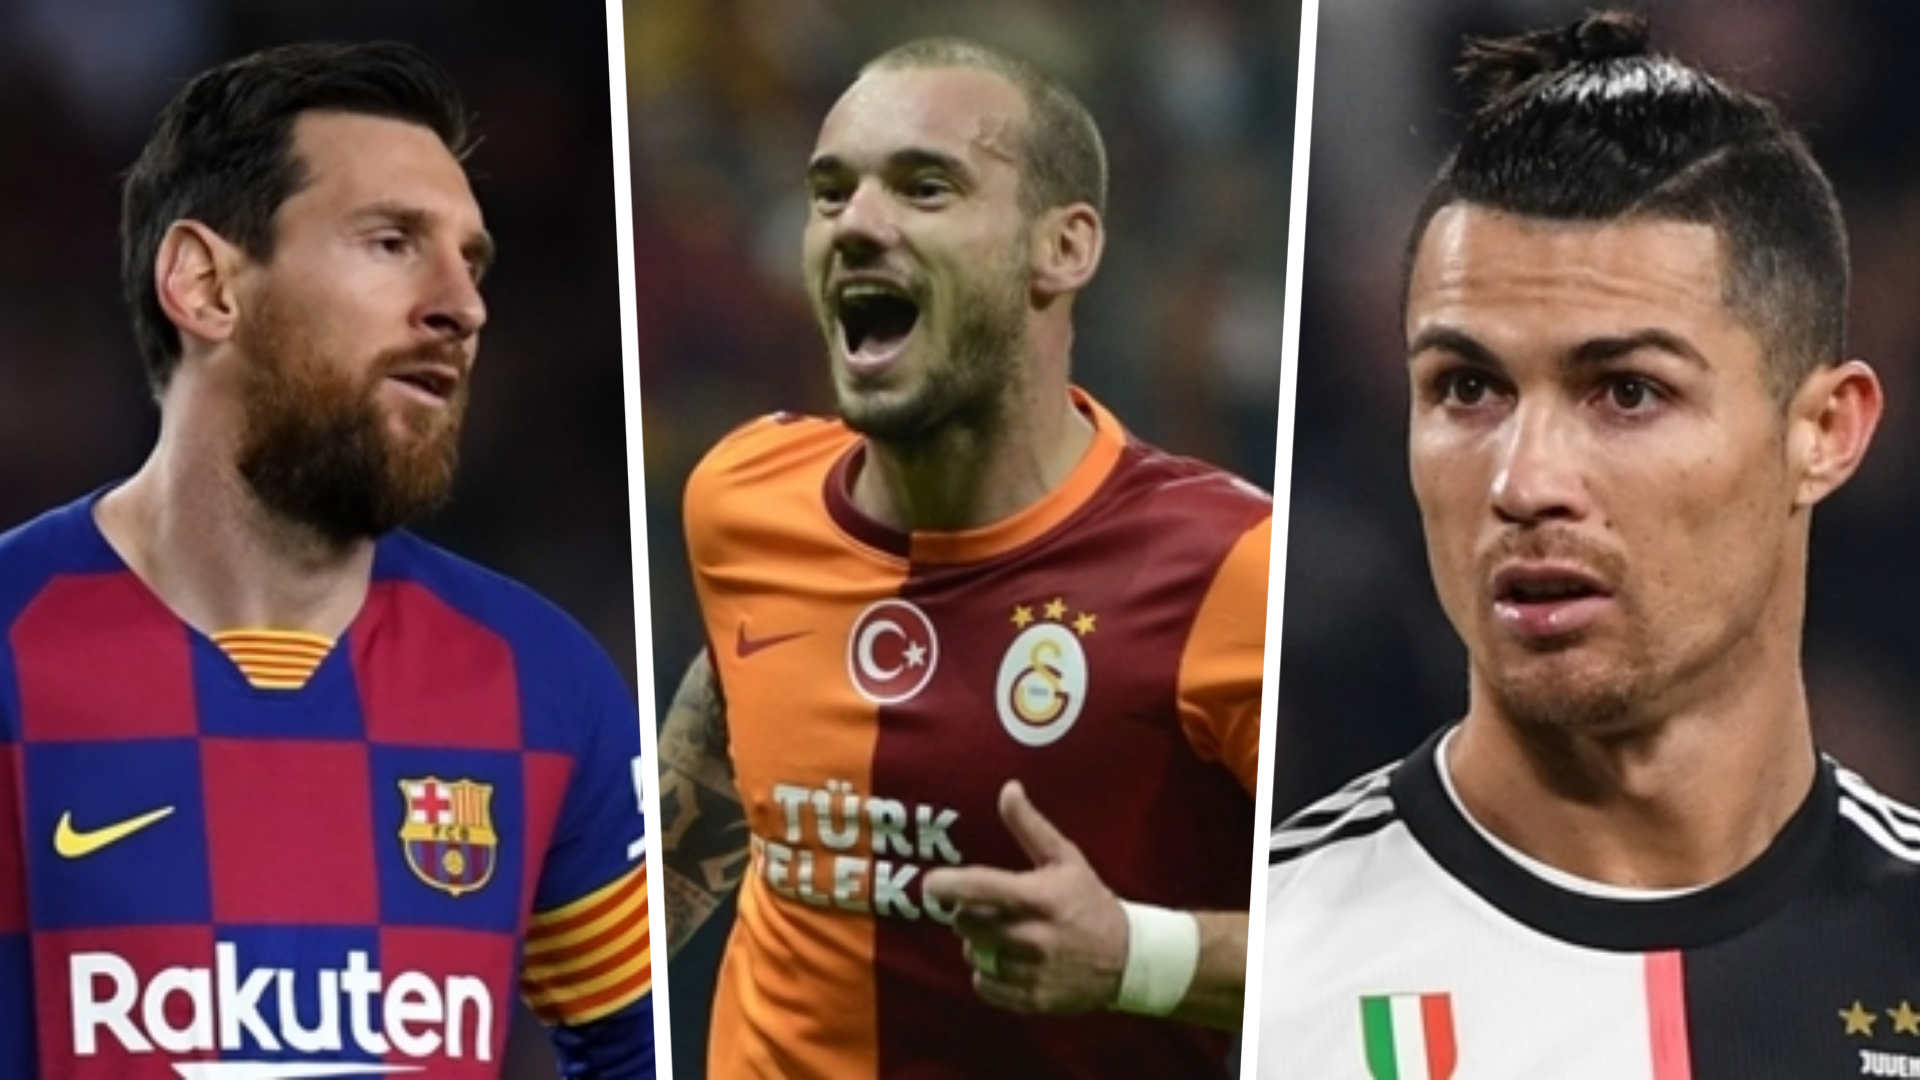 Sneijder: I could have been as good as Messi and Ronaldo - but I enjoyed my life and wine